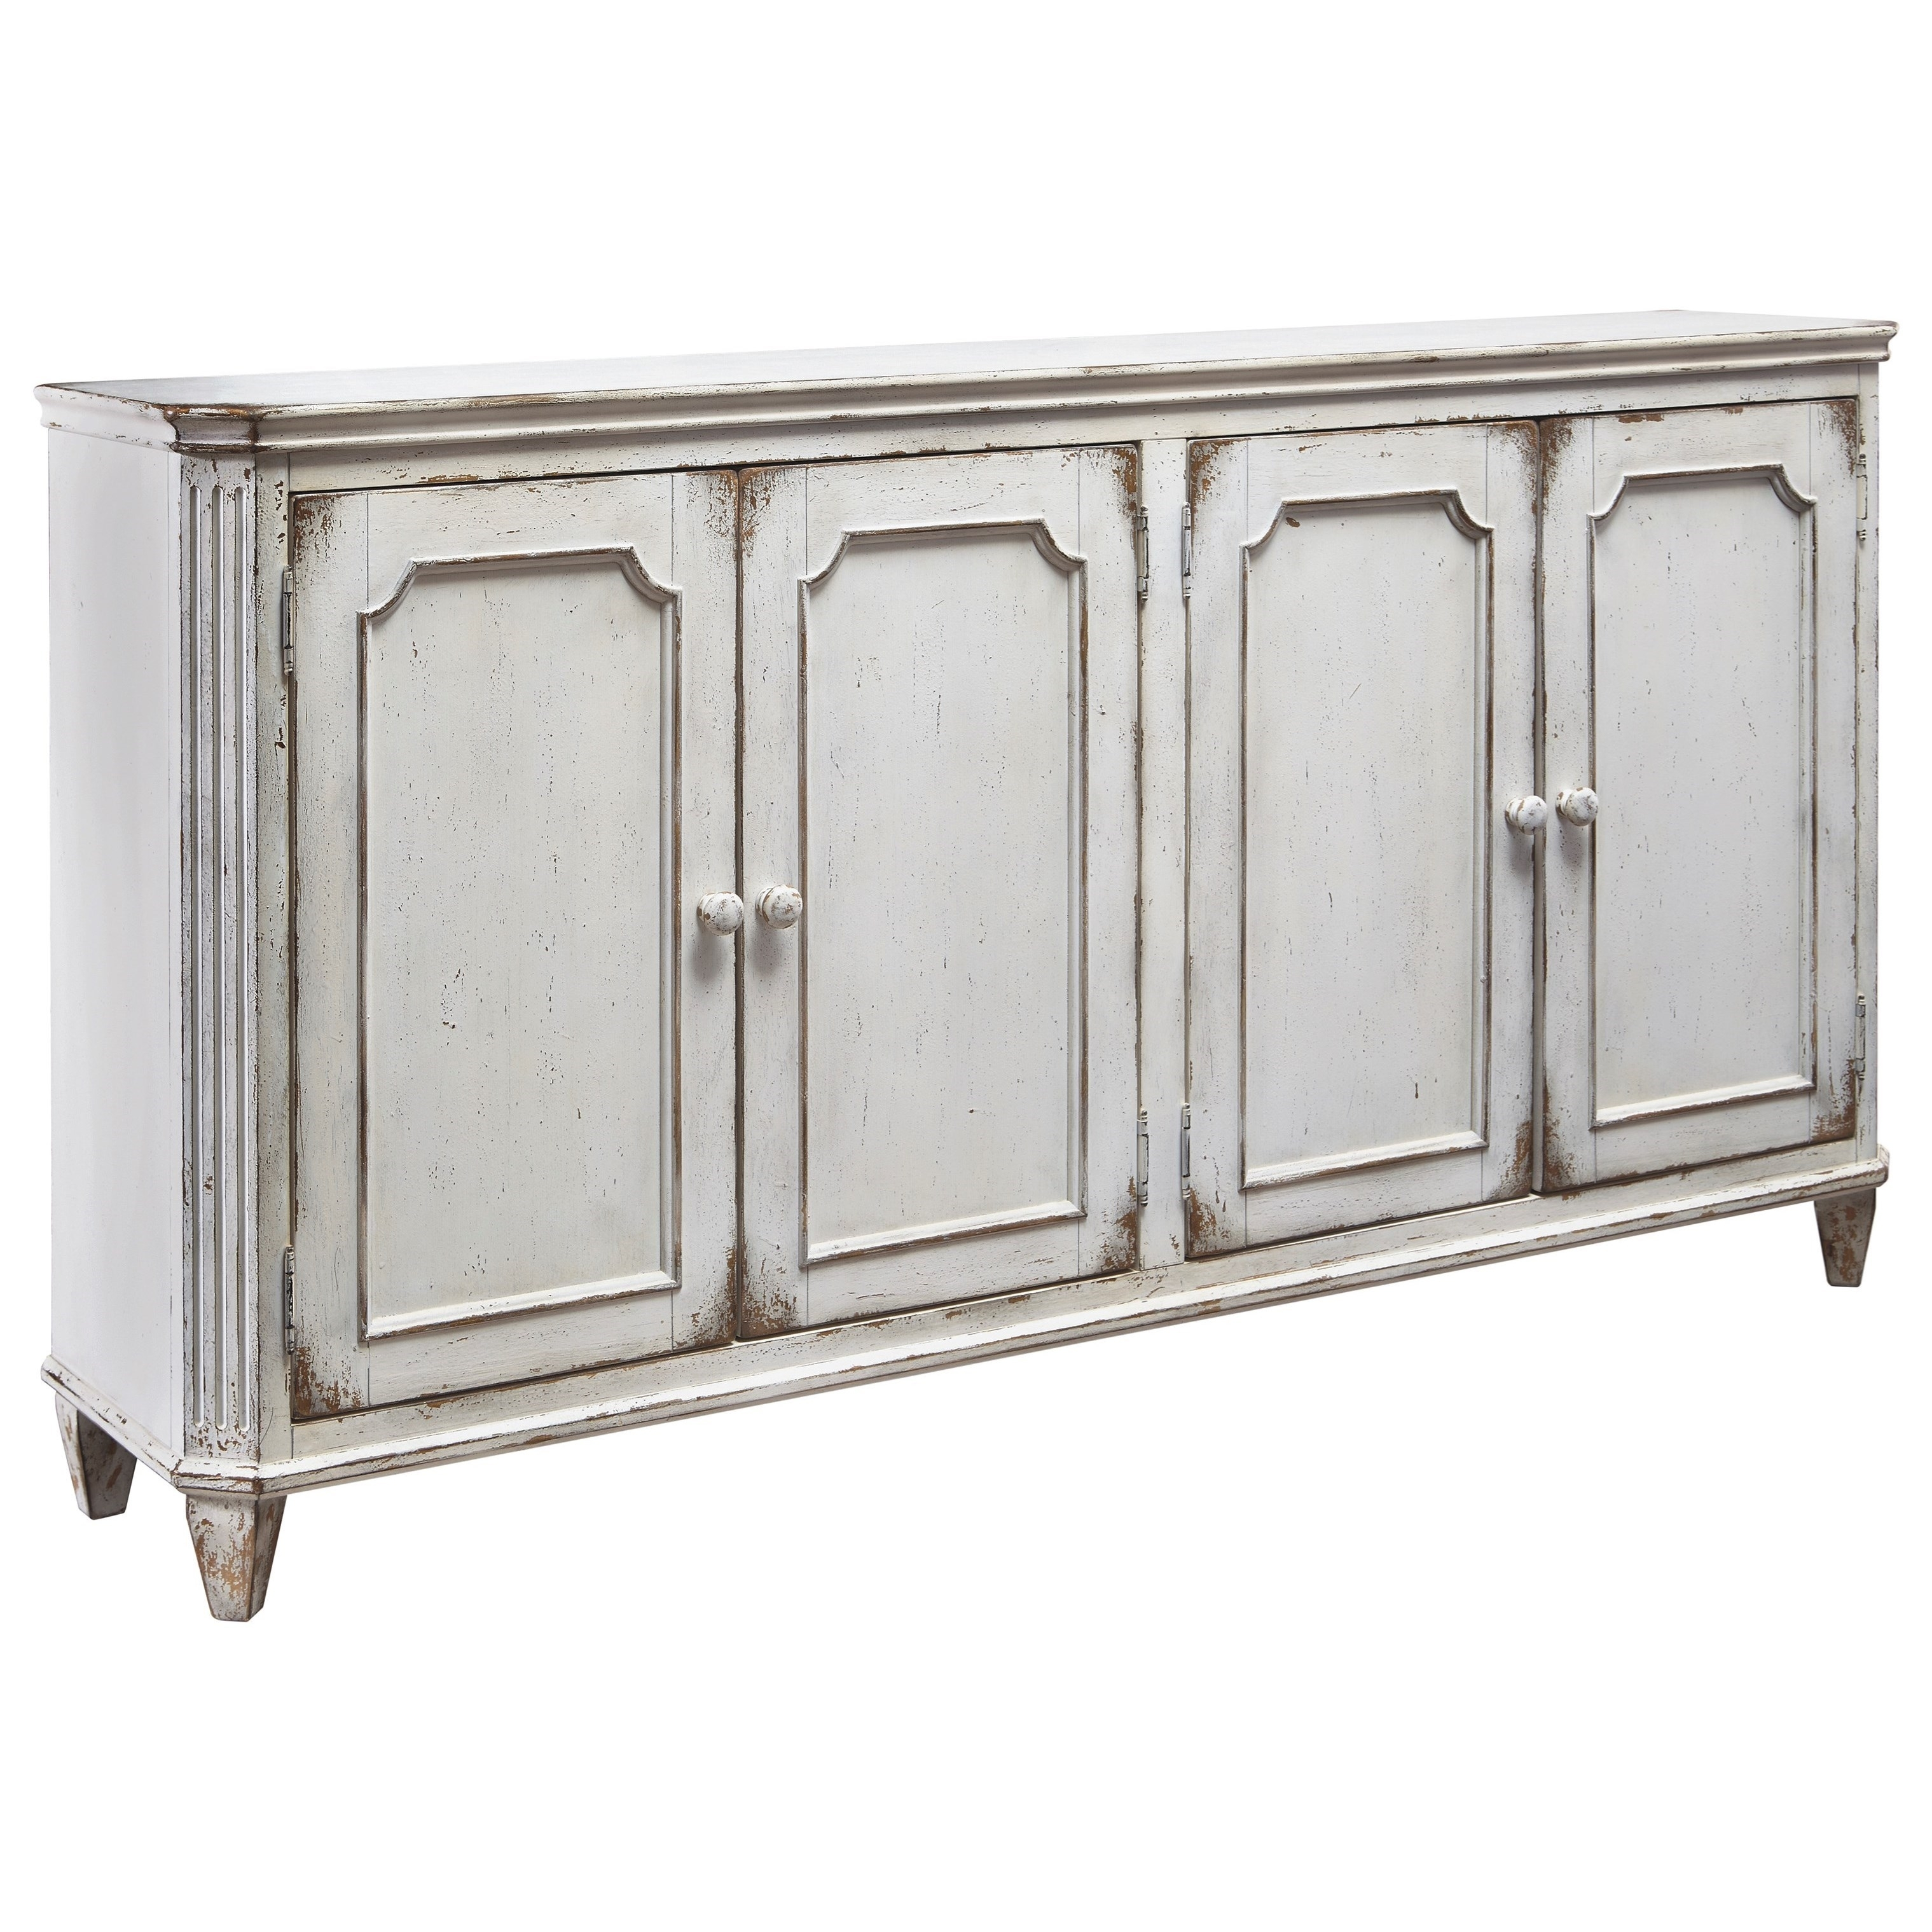 French Provincial Style Door Accent Cabinet In Antique White Finish pertaining to Vintage Finish 4-Door Sideboards (Image 9 of 30)